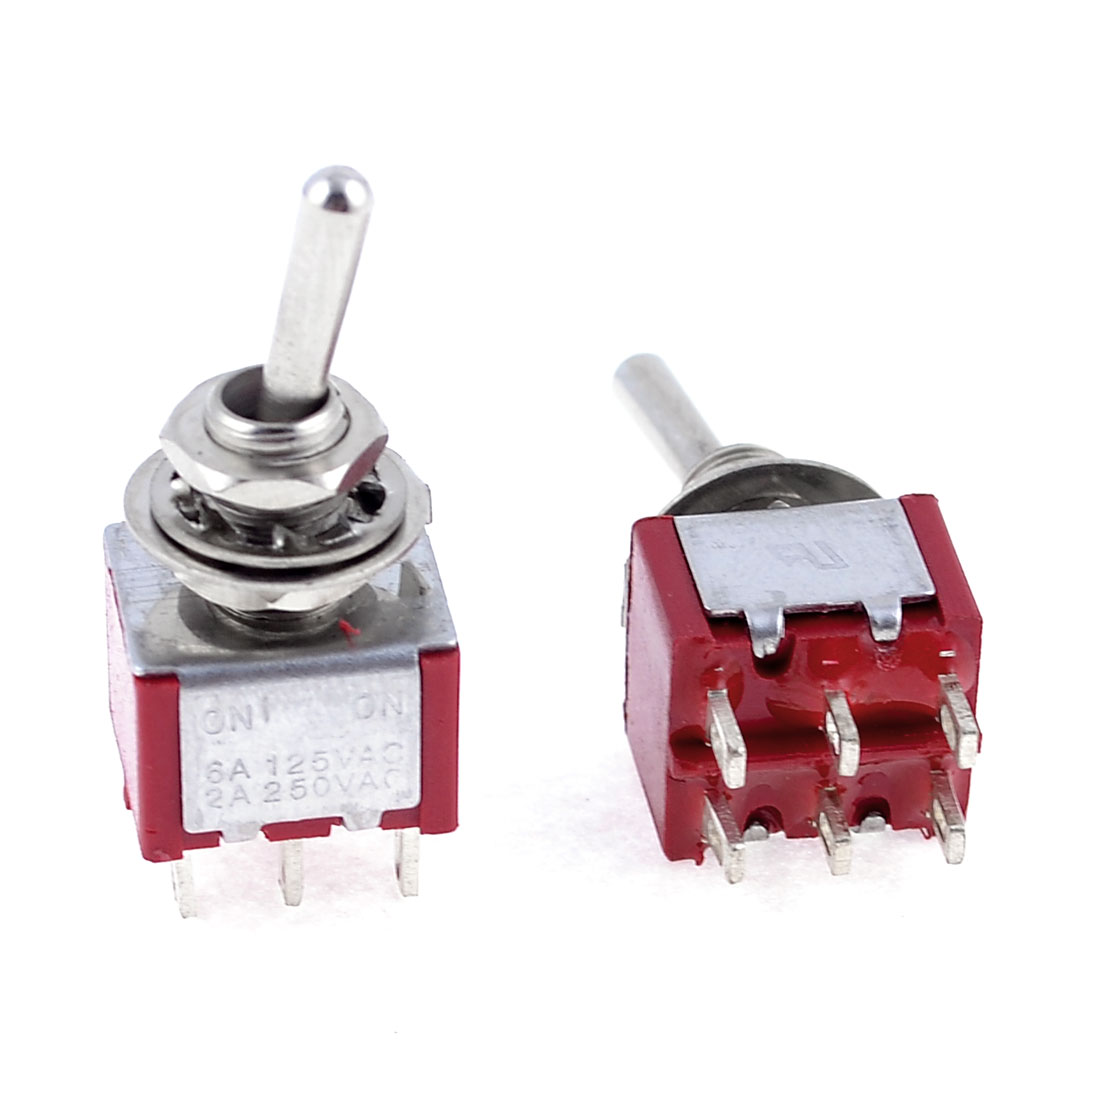 2 Pcs AC 125V 6A 250V 2A 6 Pin DPDT On/On 2 Position Mini Toggle Switch Red